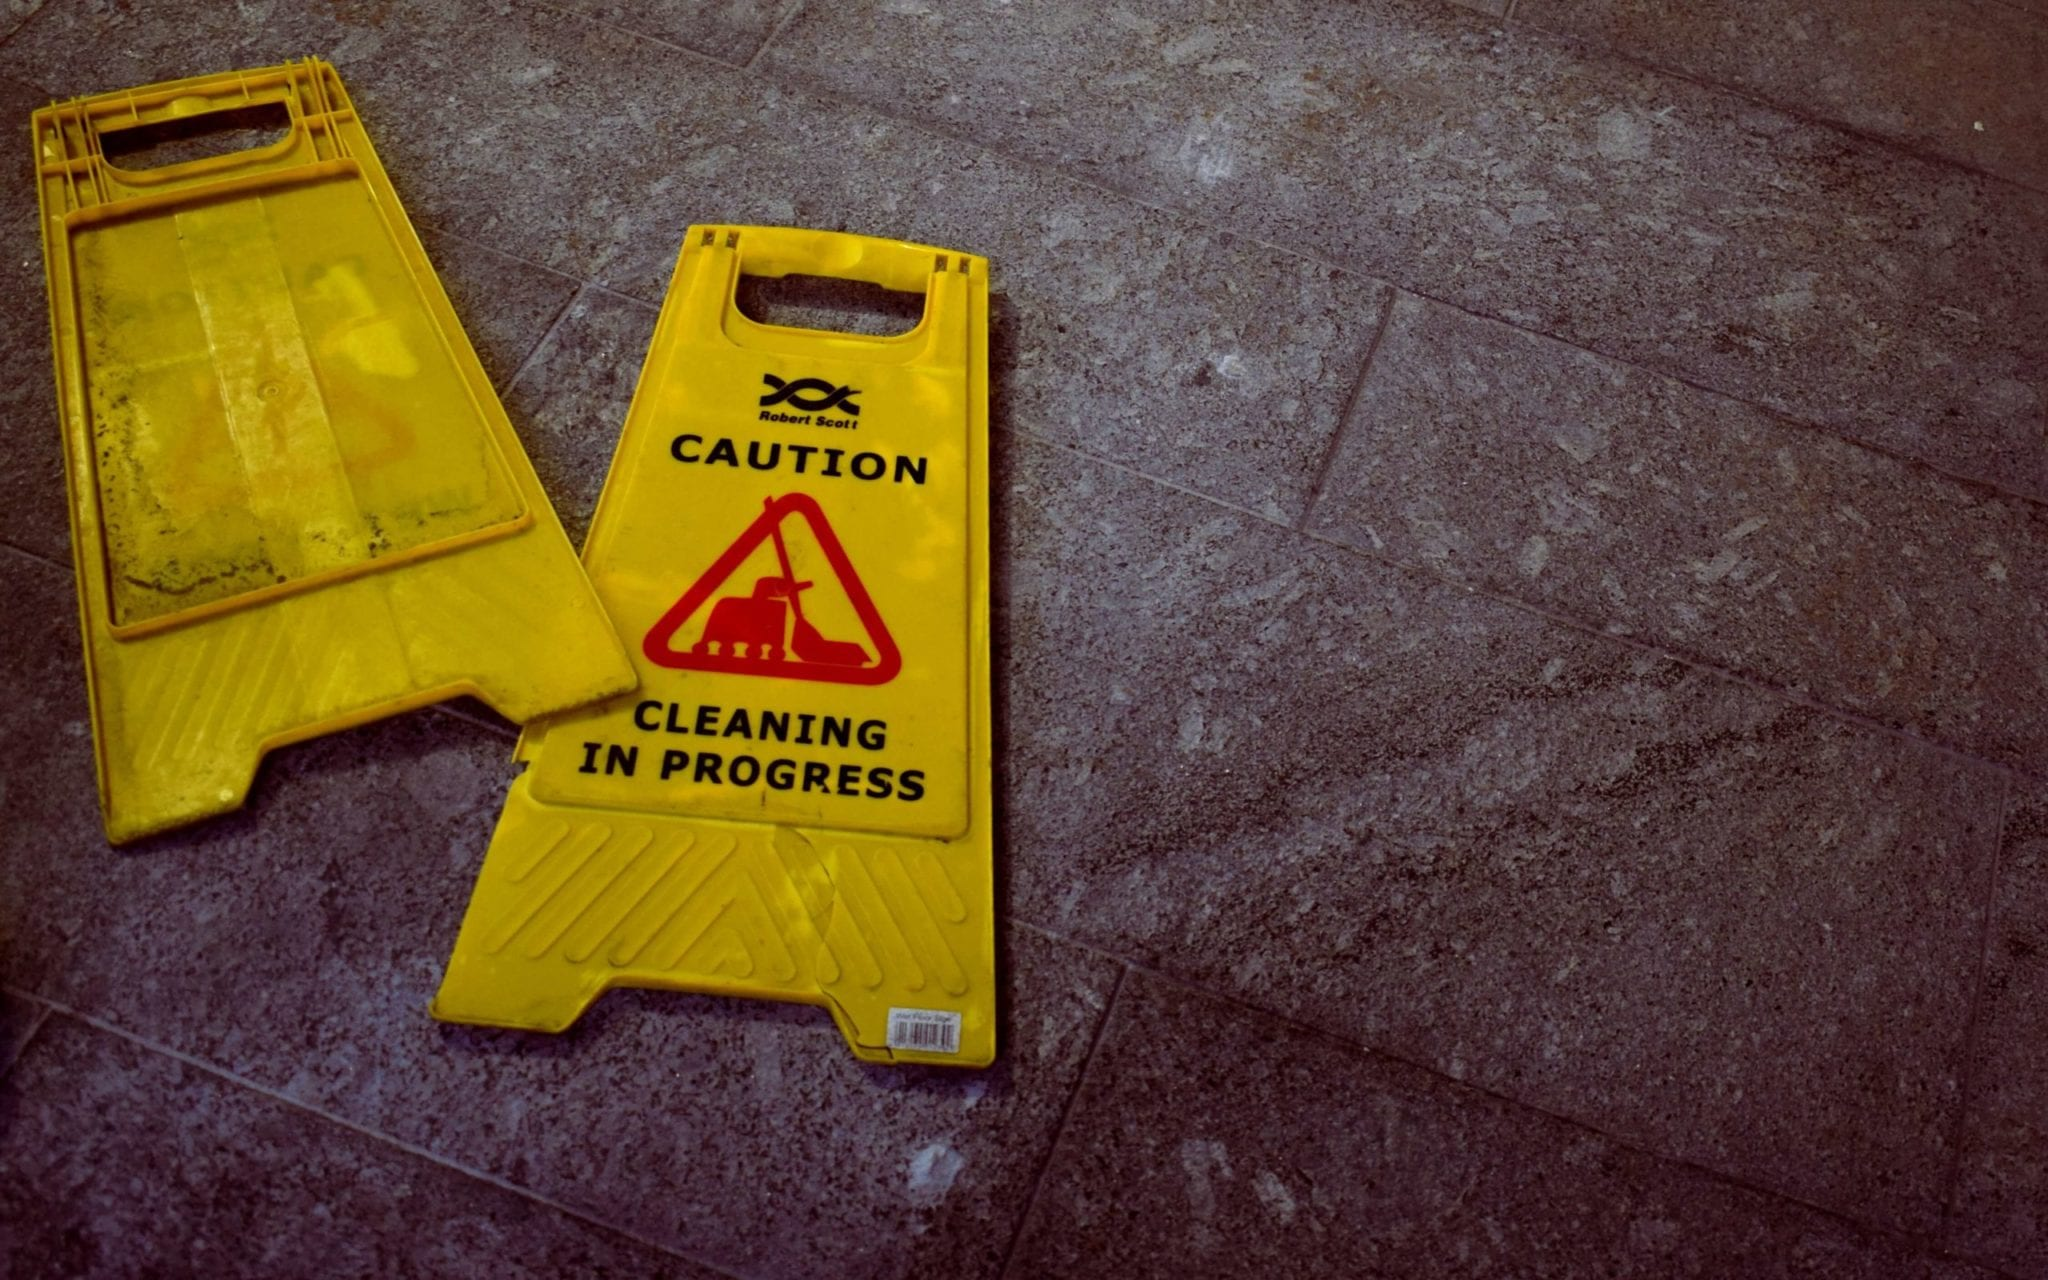 Proving Fault in a Slip and Fall Accident